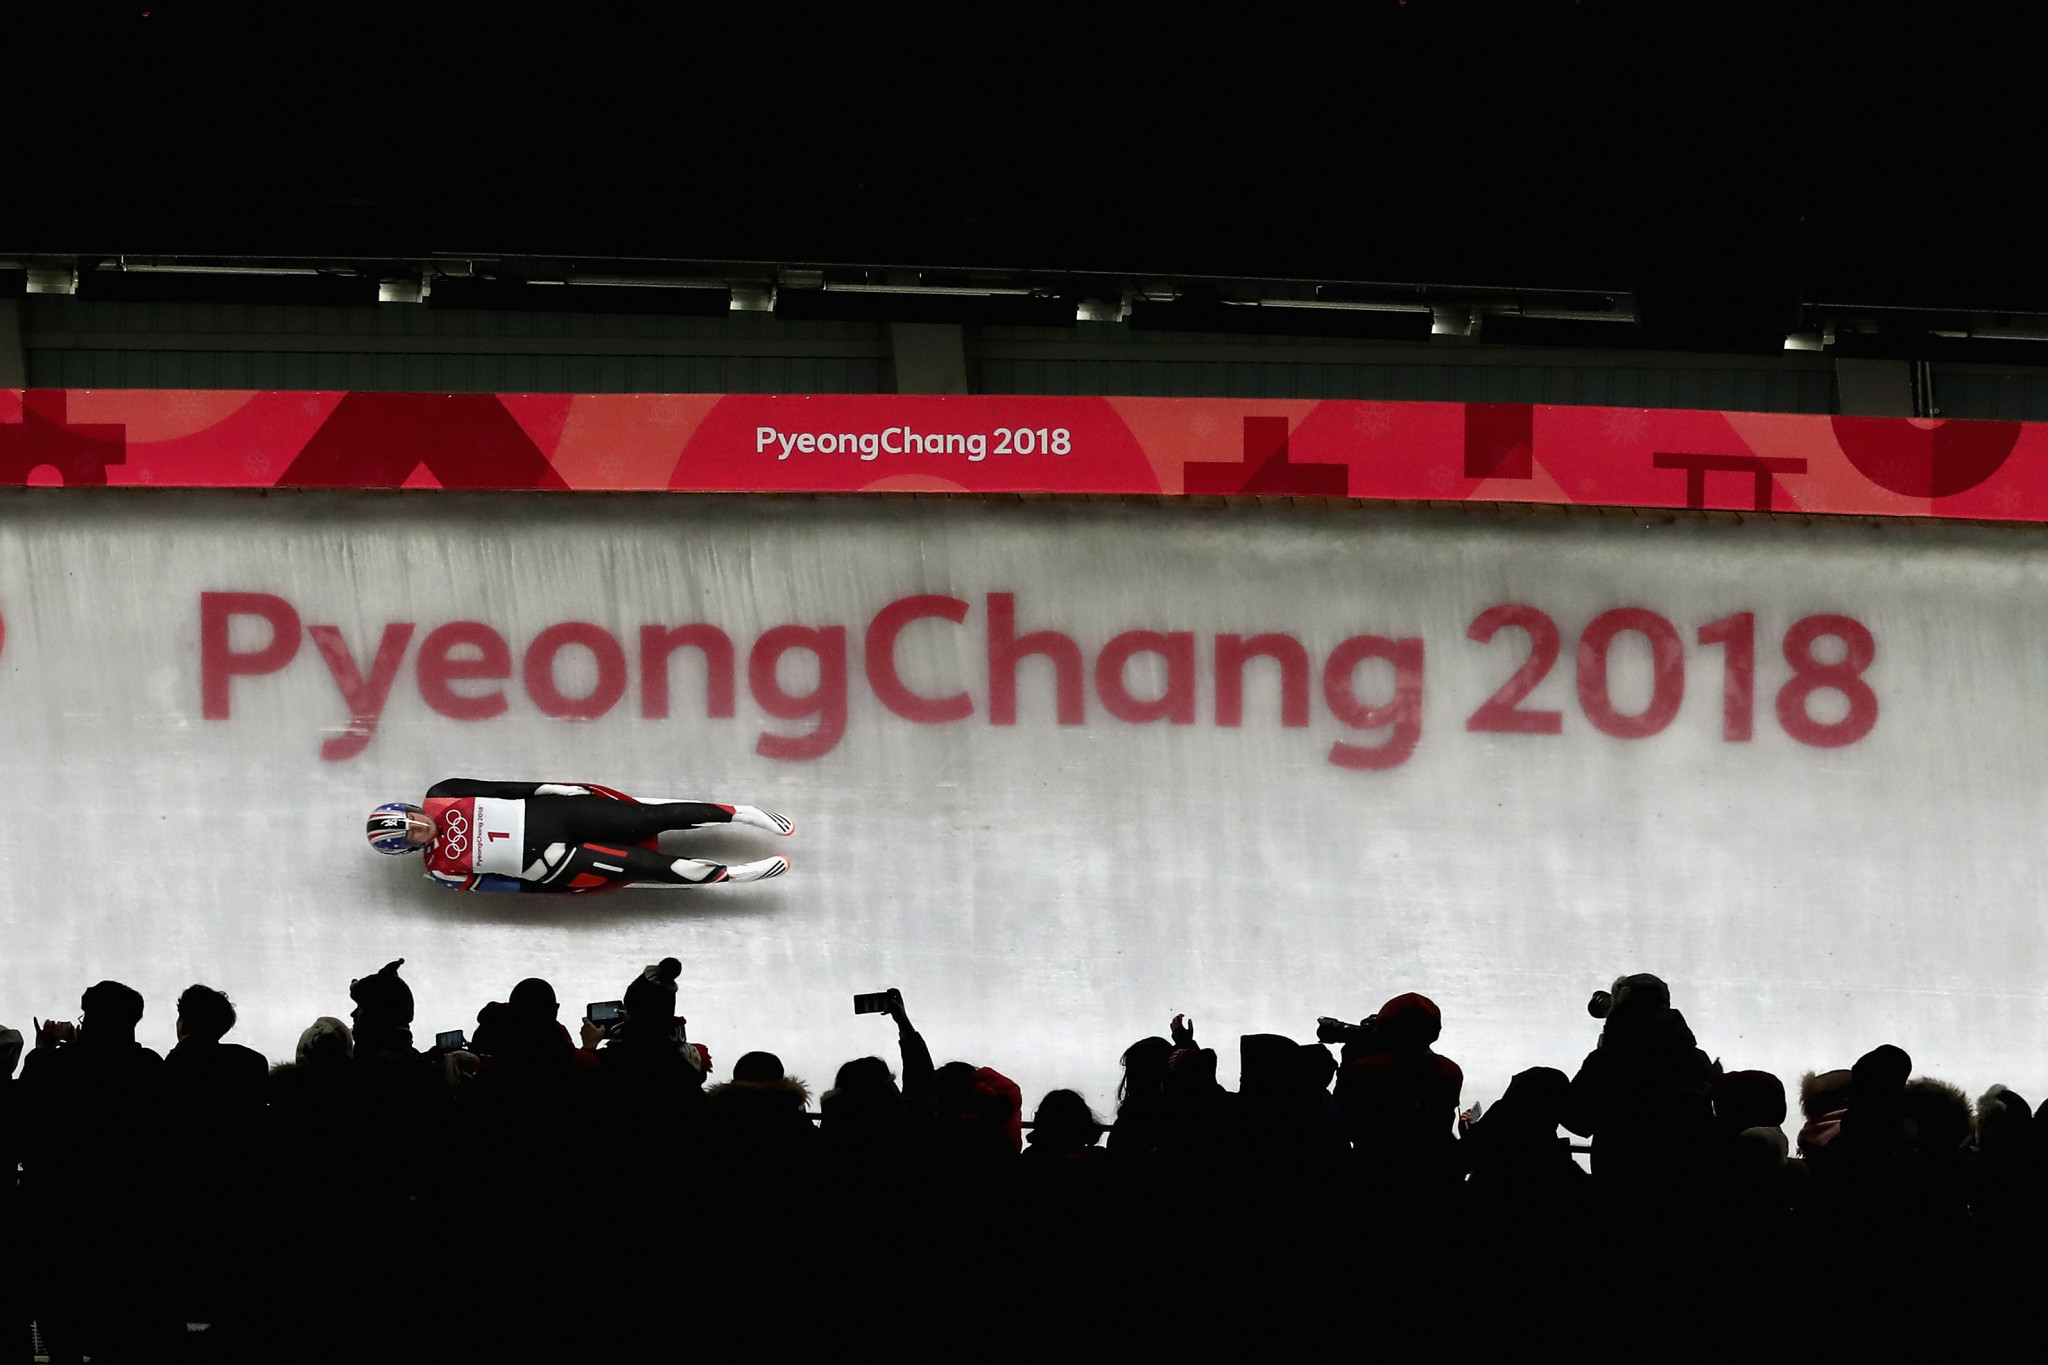 USA Luge is beginning its national talent search later this month, to find potential Winter Olympian lugers of the future ©Getty Images